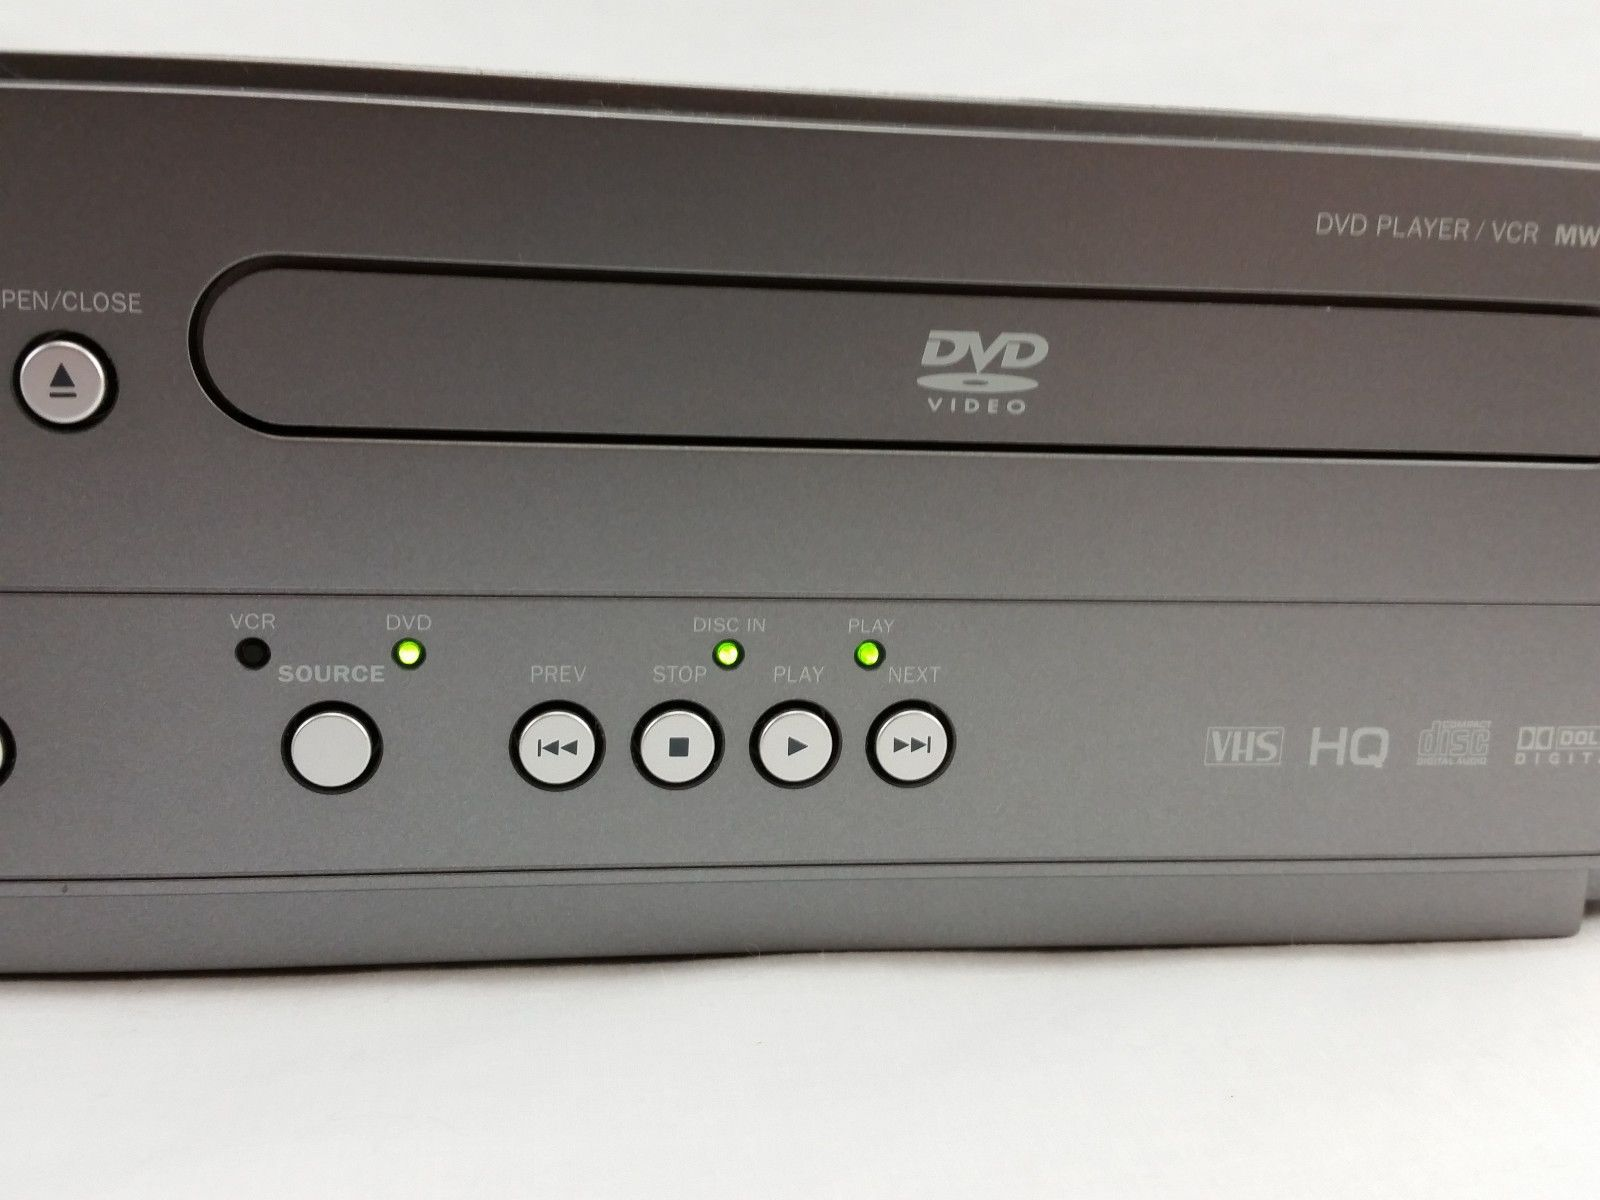 magnavox mwd2206 combo dvd vcr player vhs recorder with remote